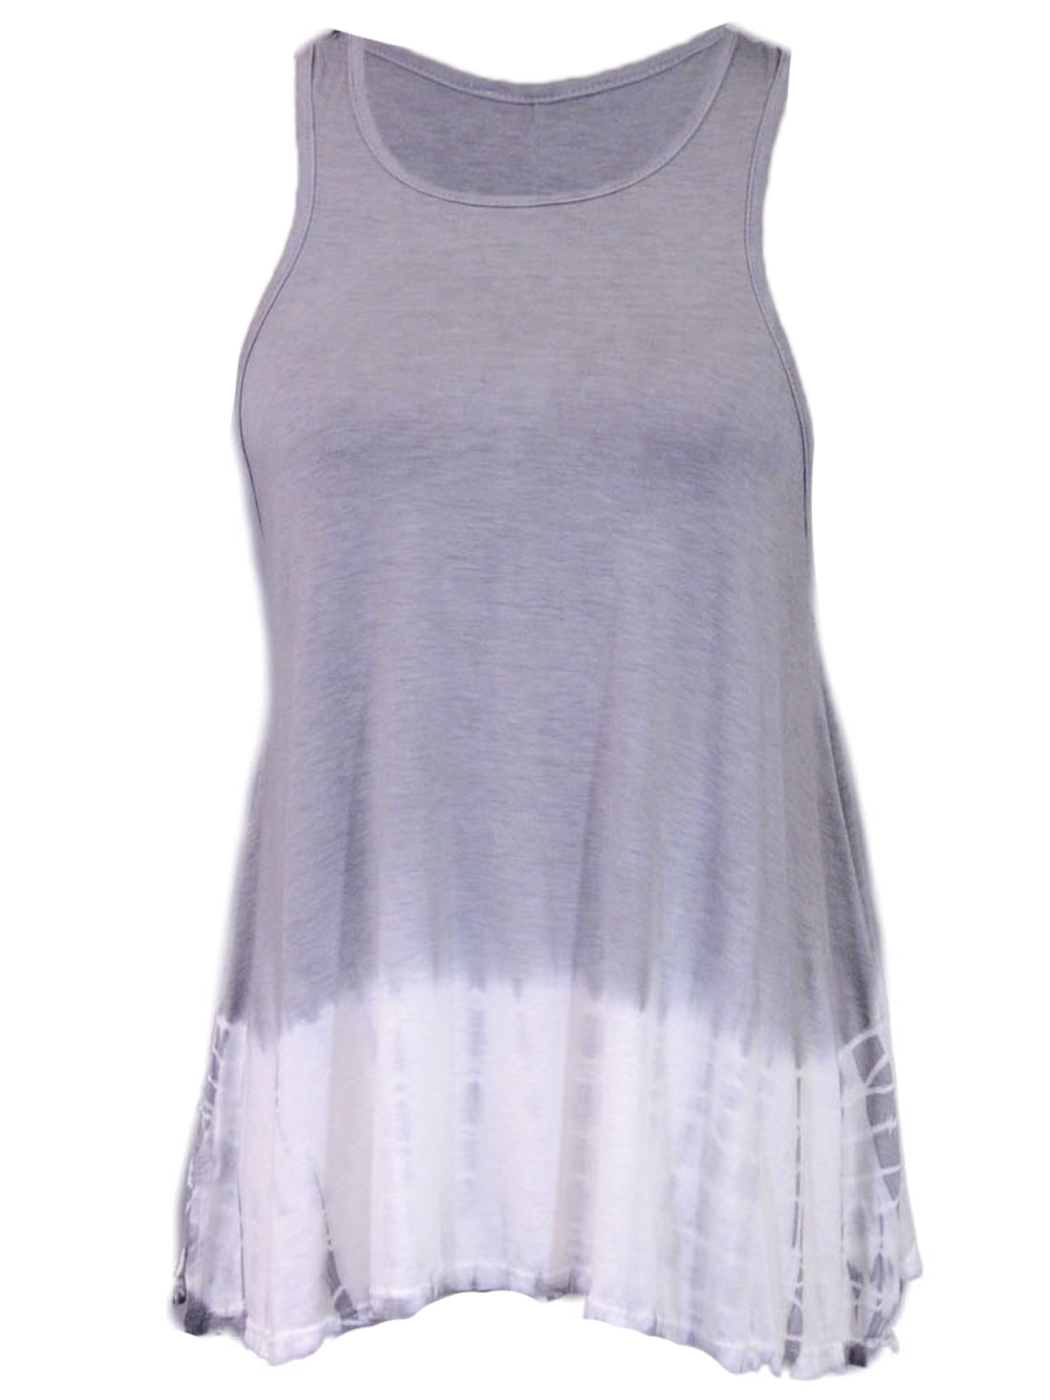 Basil And Lola Casual Flowy Tie Dye Racer Back Strap Flared Sleeveless Tank